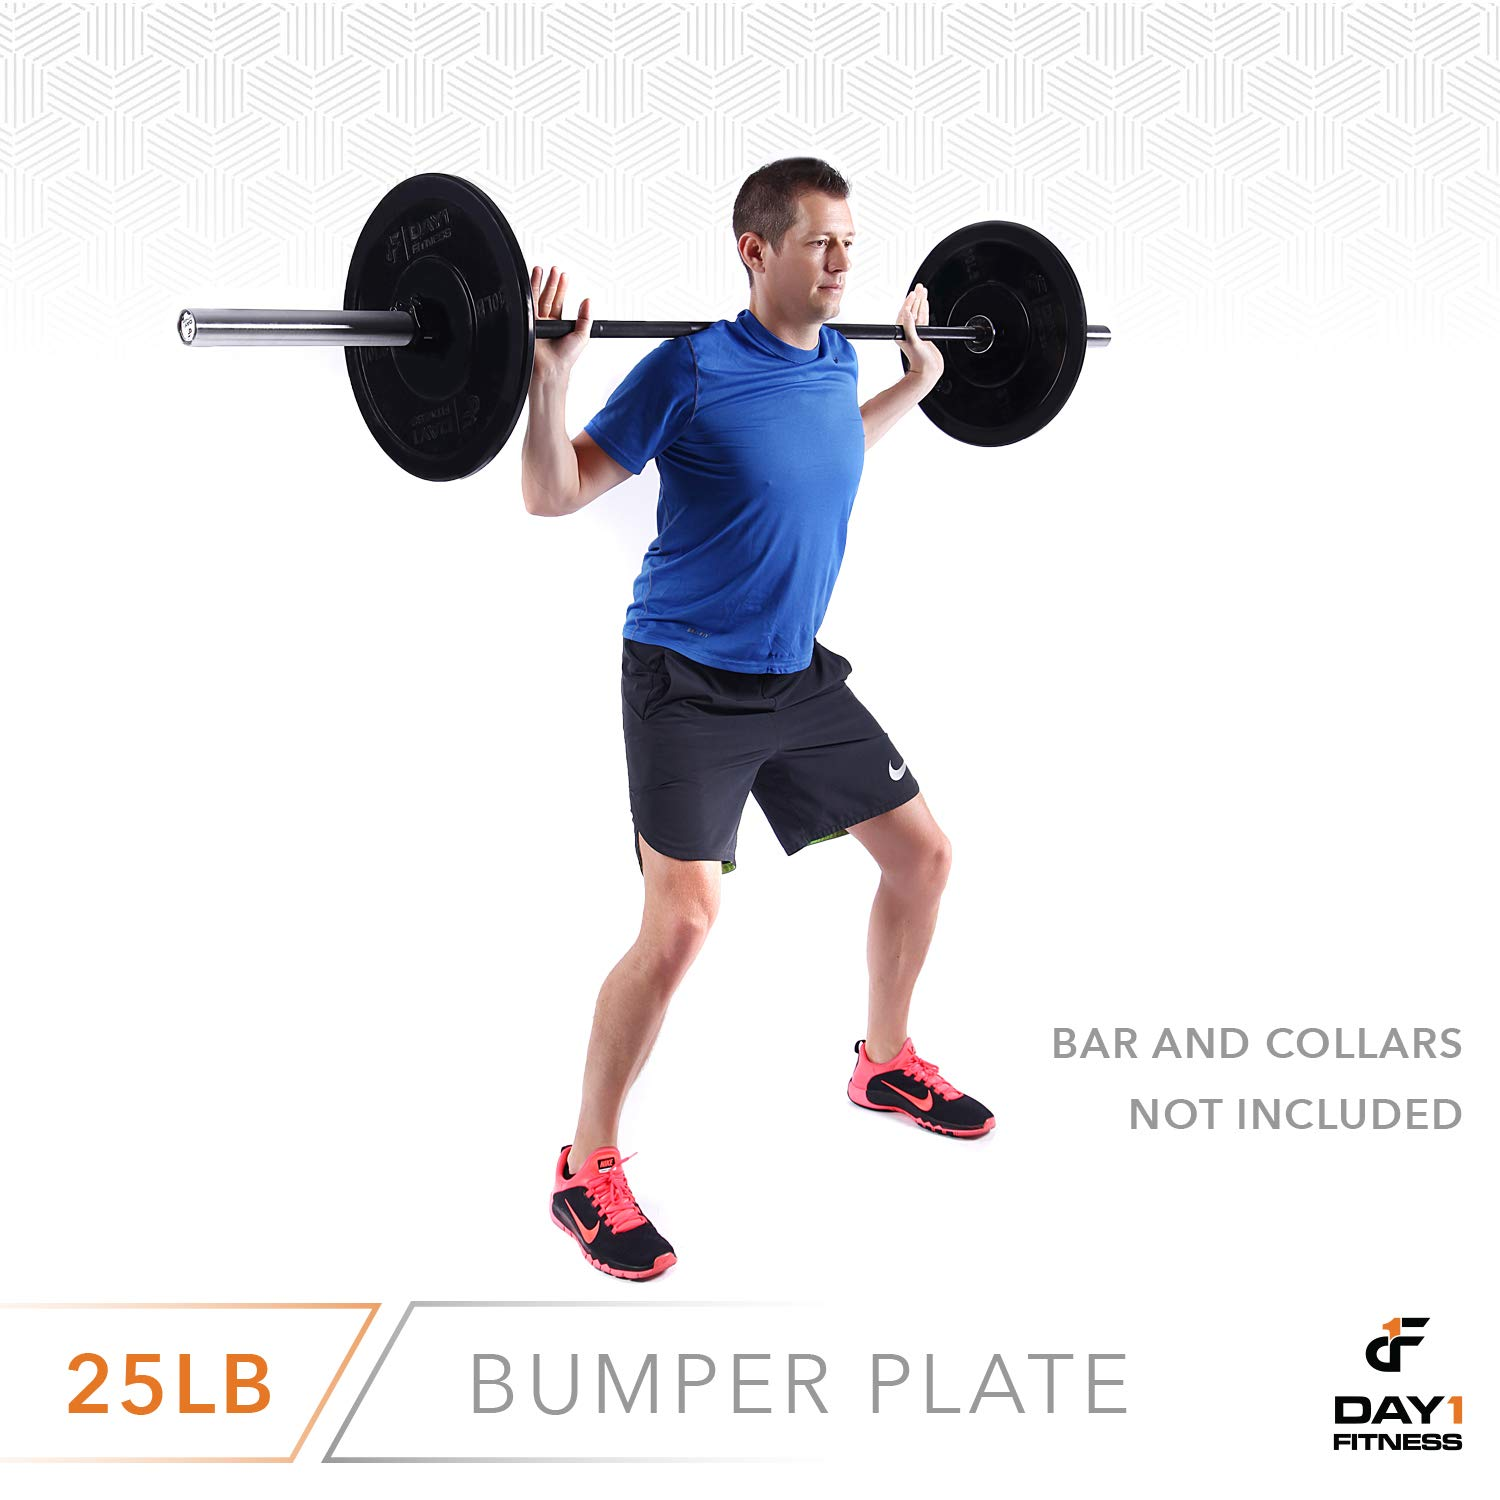 "Day 1 Fitness Olympic Bumper Weighted Plate 2"" for Barbells, Bars – 25 lb Single Plate - Shock-Absorbing, Minimal Bounce Steel Weights with Bumpers for Lifting, Strength Training, and Working Out by Day 1 Fitness (Image #8)"